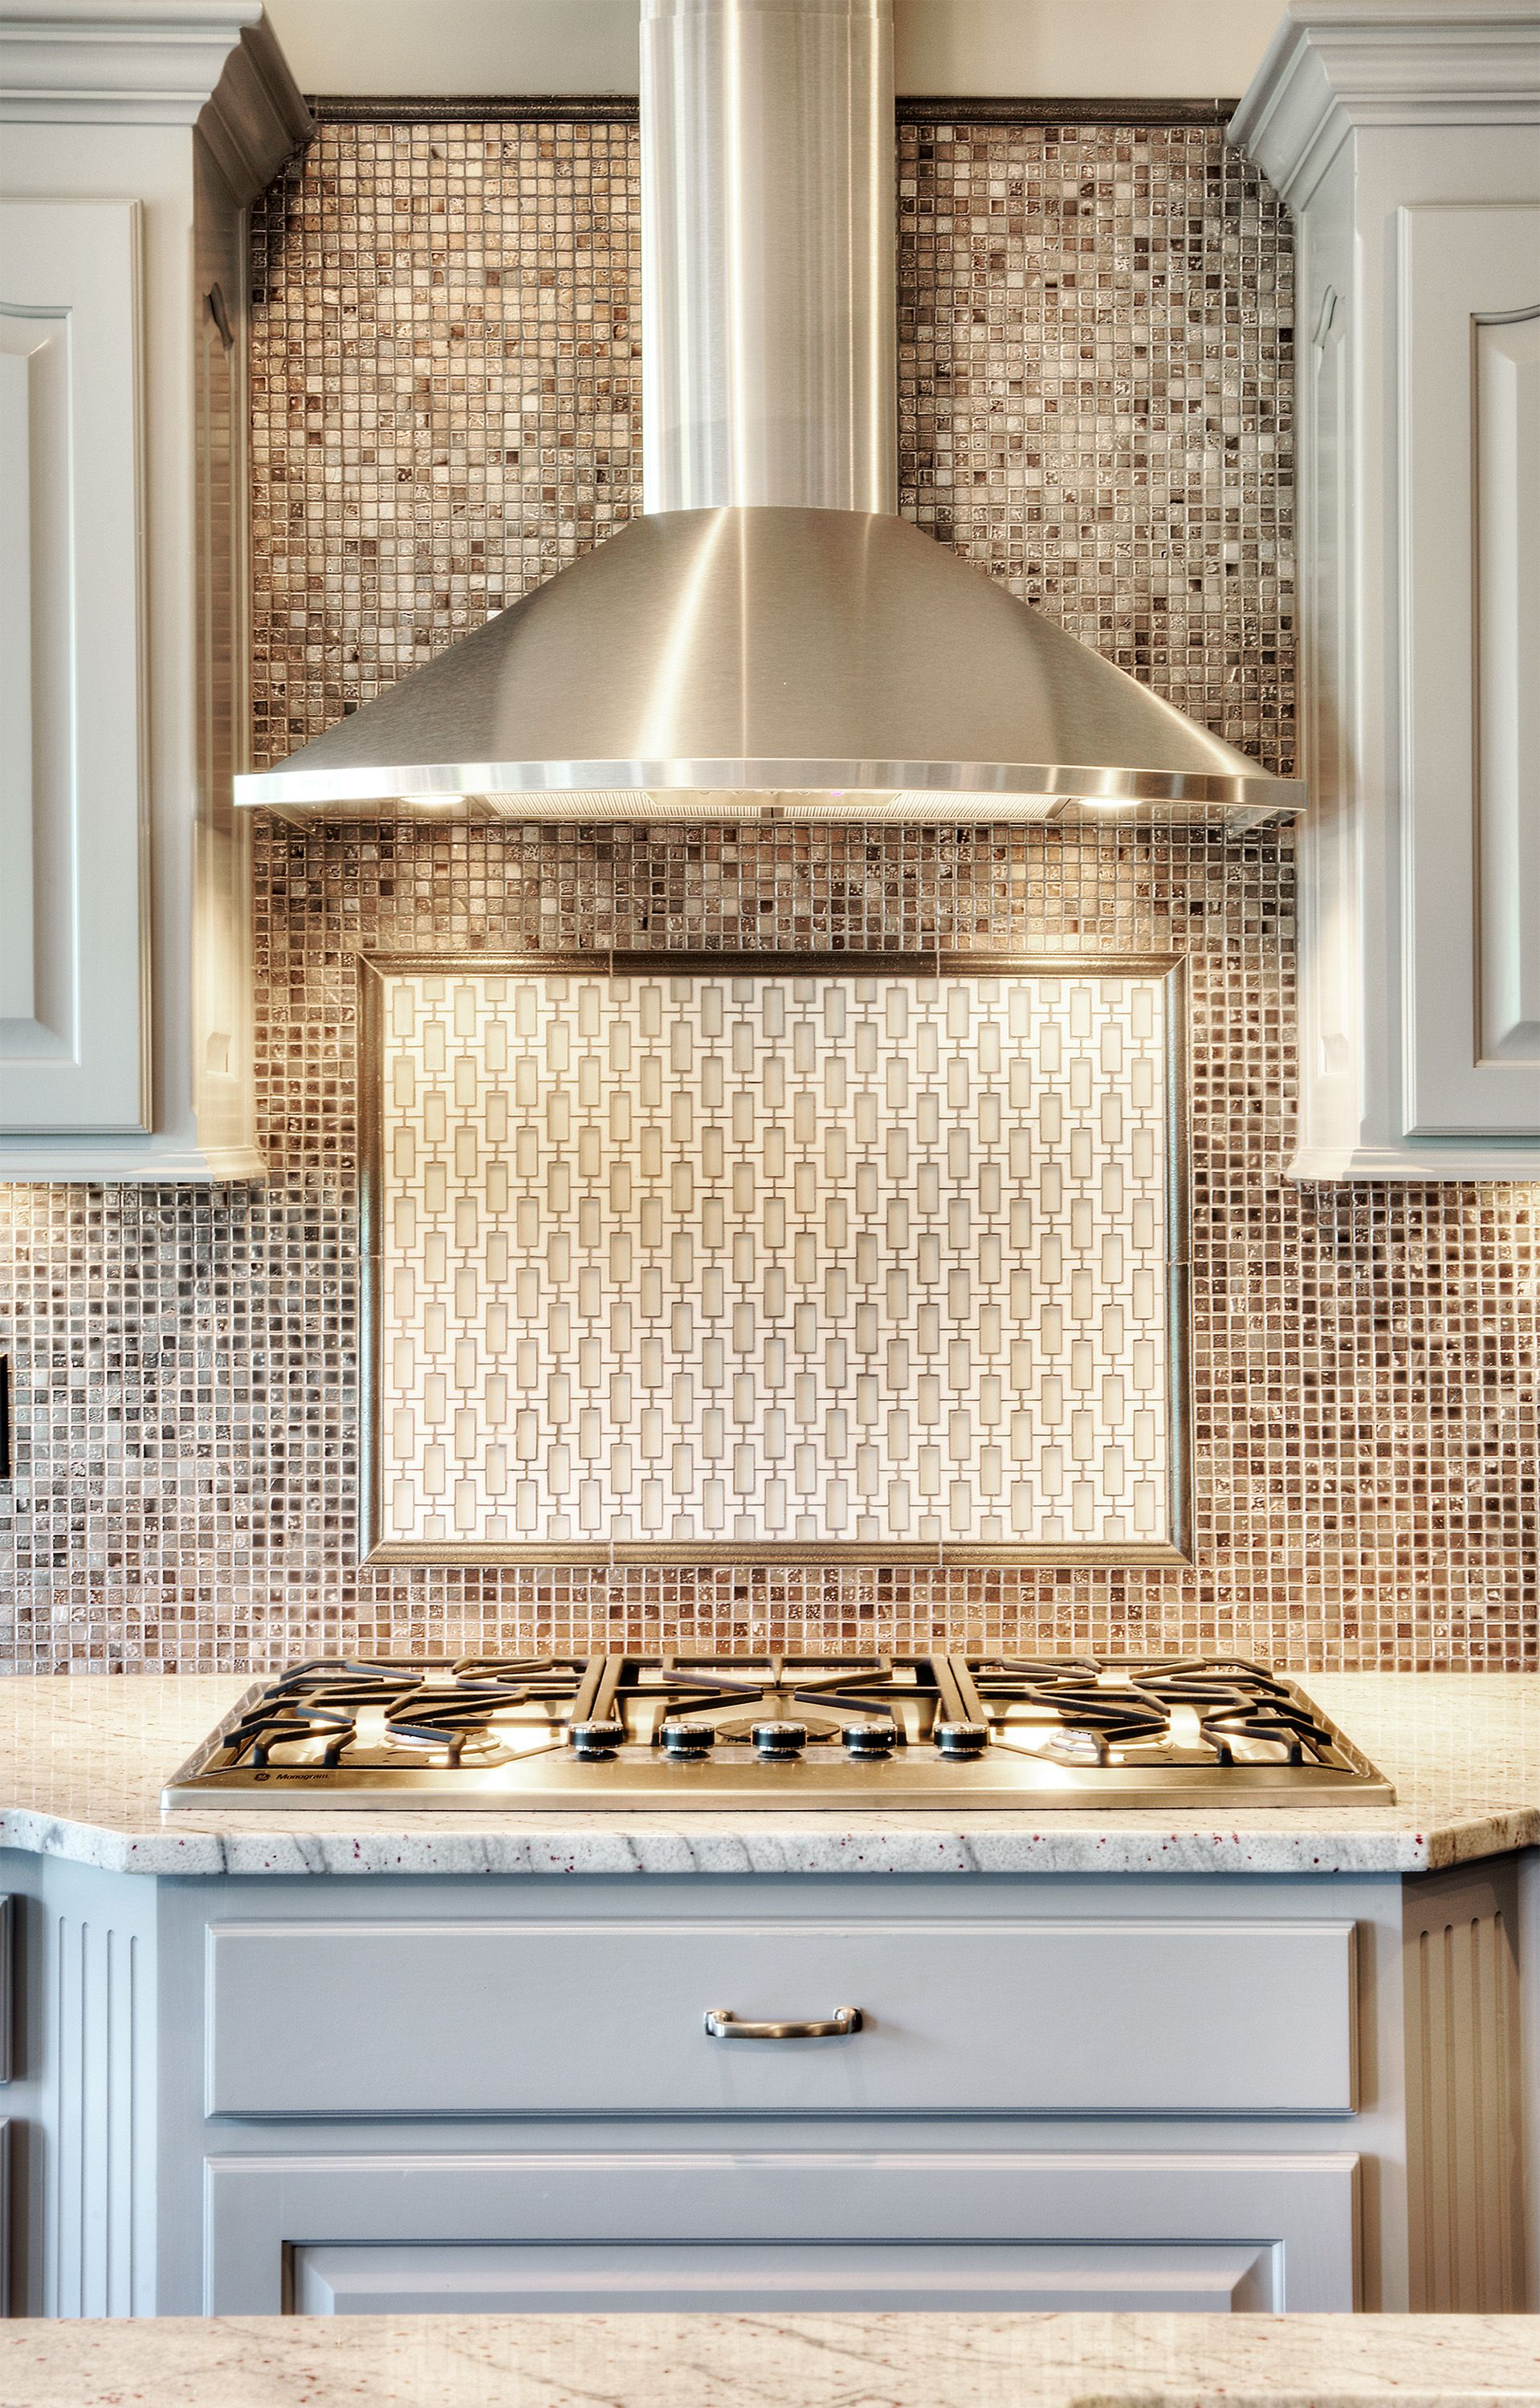 Decorative Range Hoods For Gas Stoves ~ Chrome stainless steel vent hood painted kitchen cabinets